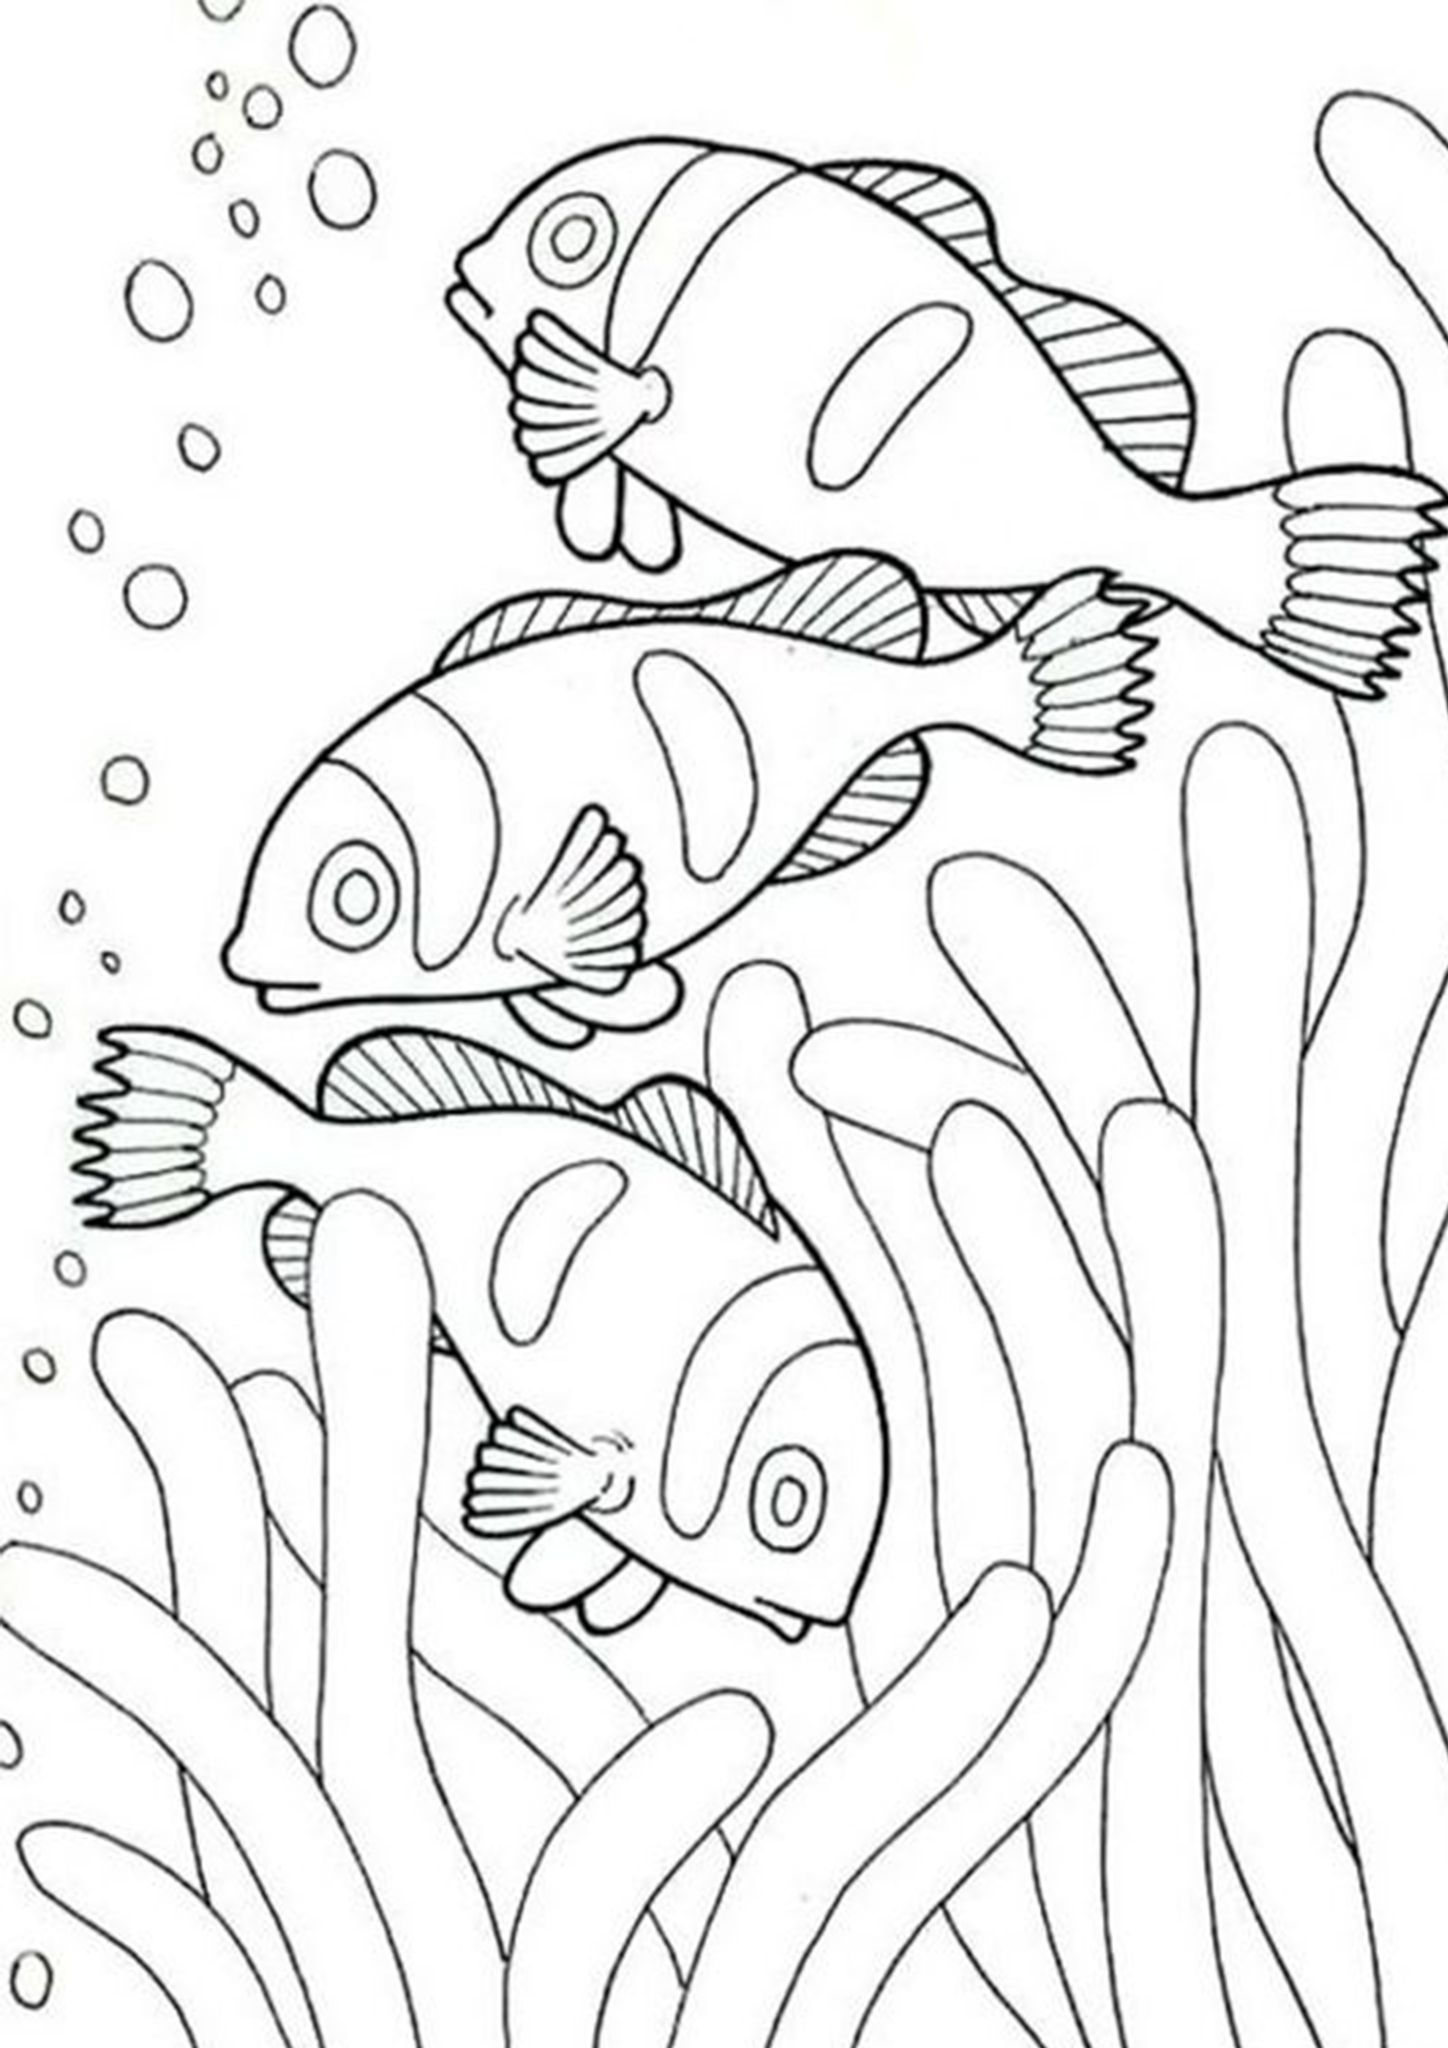 Free Easy To Print Fish Coloring Pages Fish Coloring Page Animal Coloring Pages Animal Coloring Books